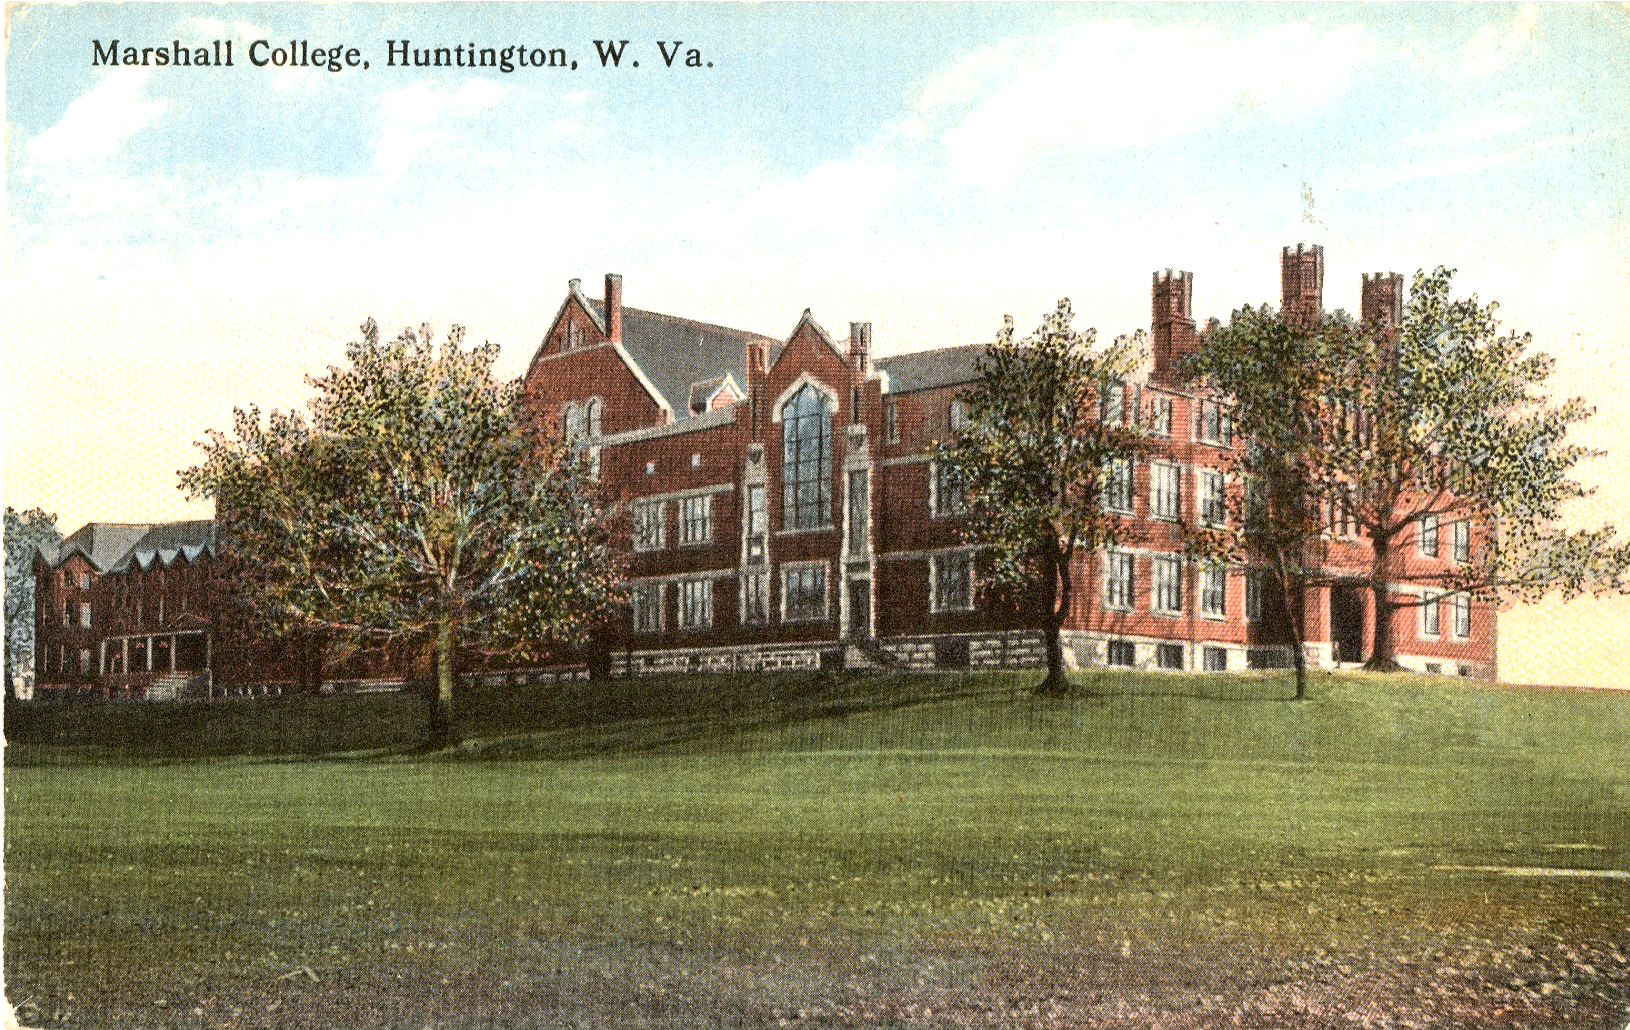 Postcard image of Old Main